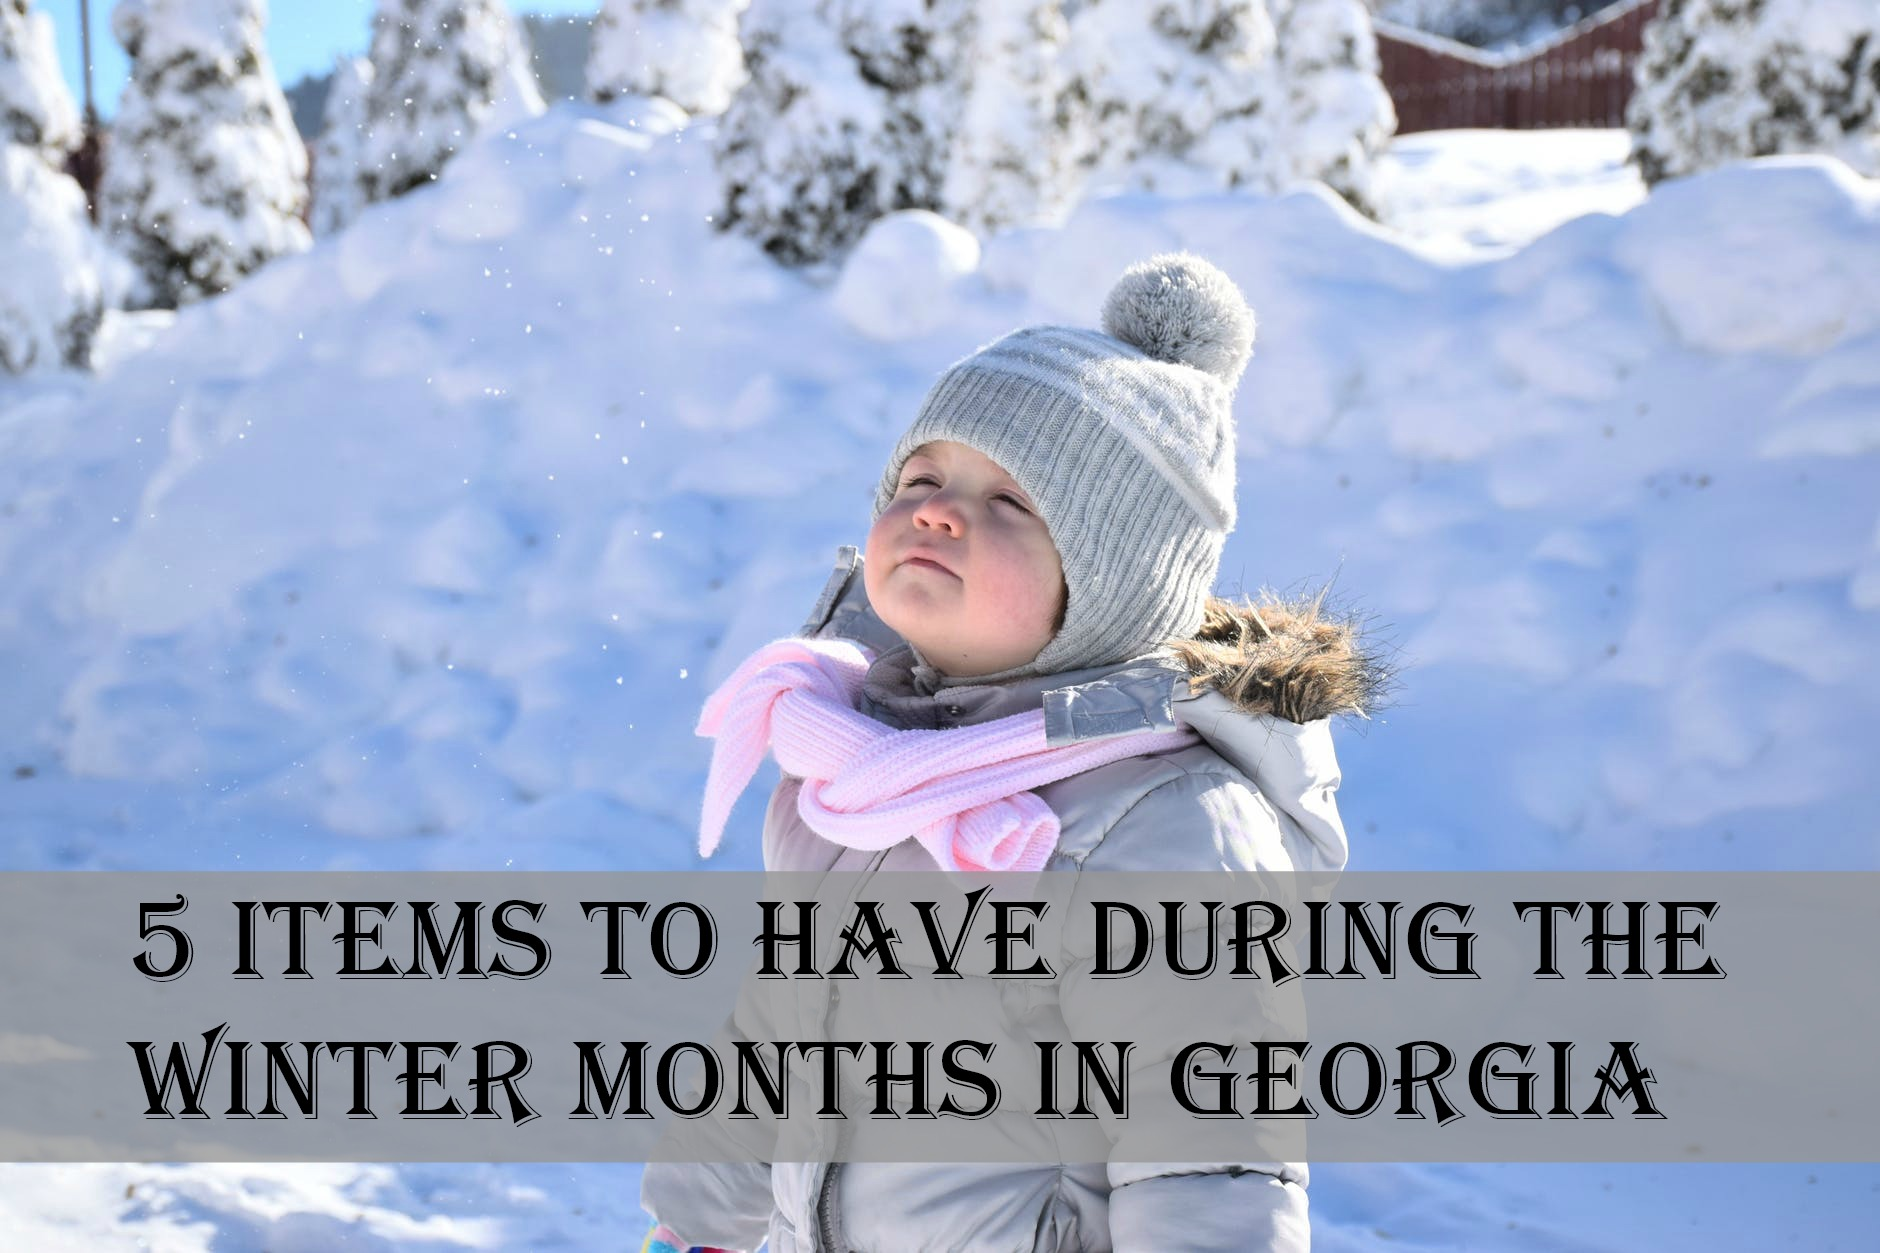 5 Items to Have During the Winter Months in Georgia